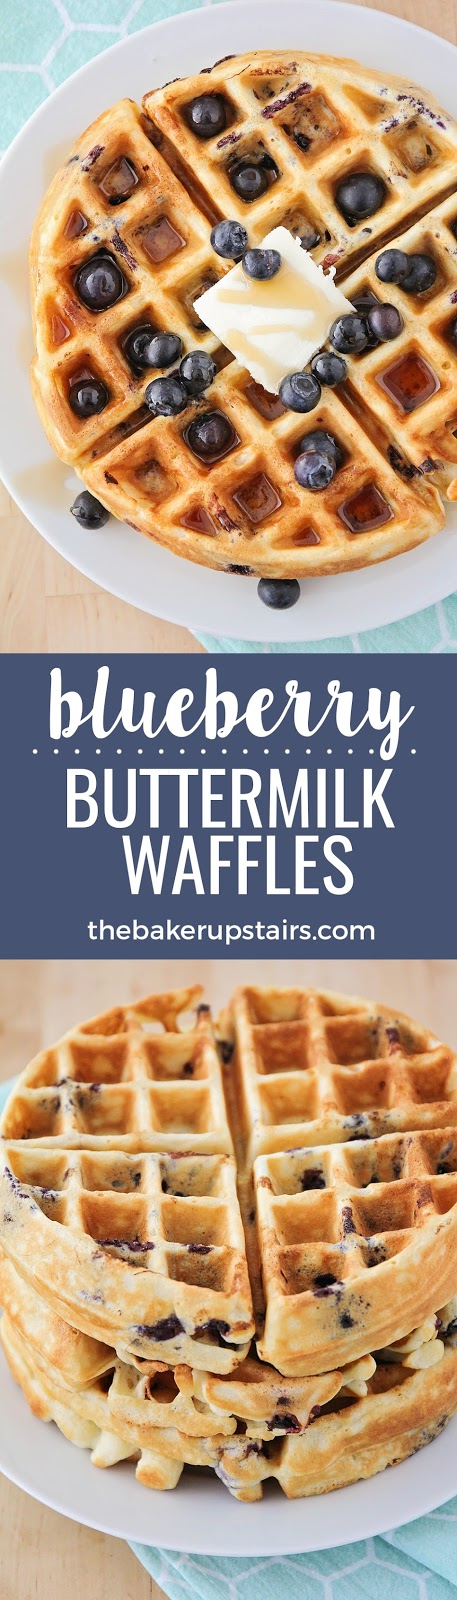 These blueberry buttermilk waffles are crisp on the outside, light and tender on the inside, and so delicious!